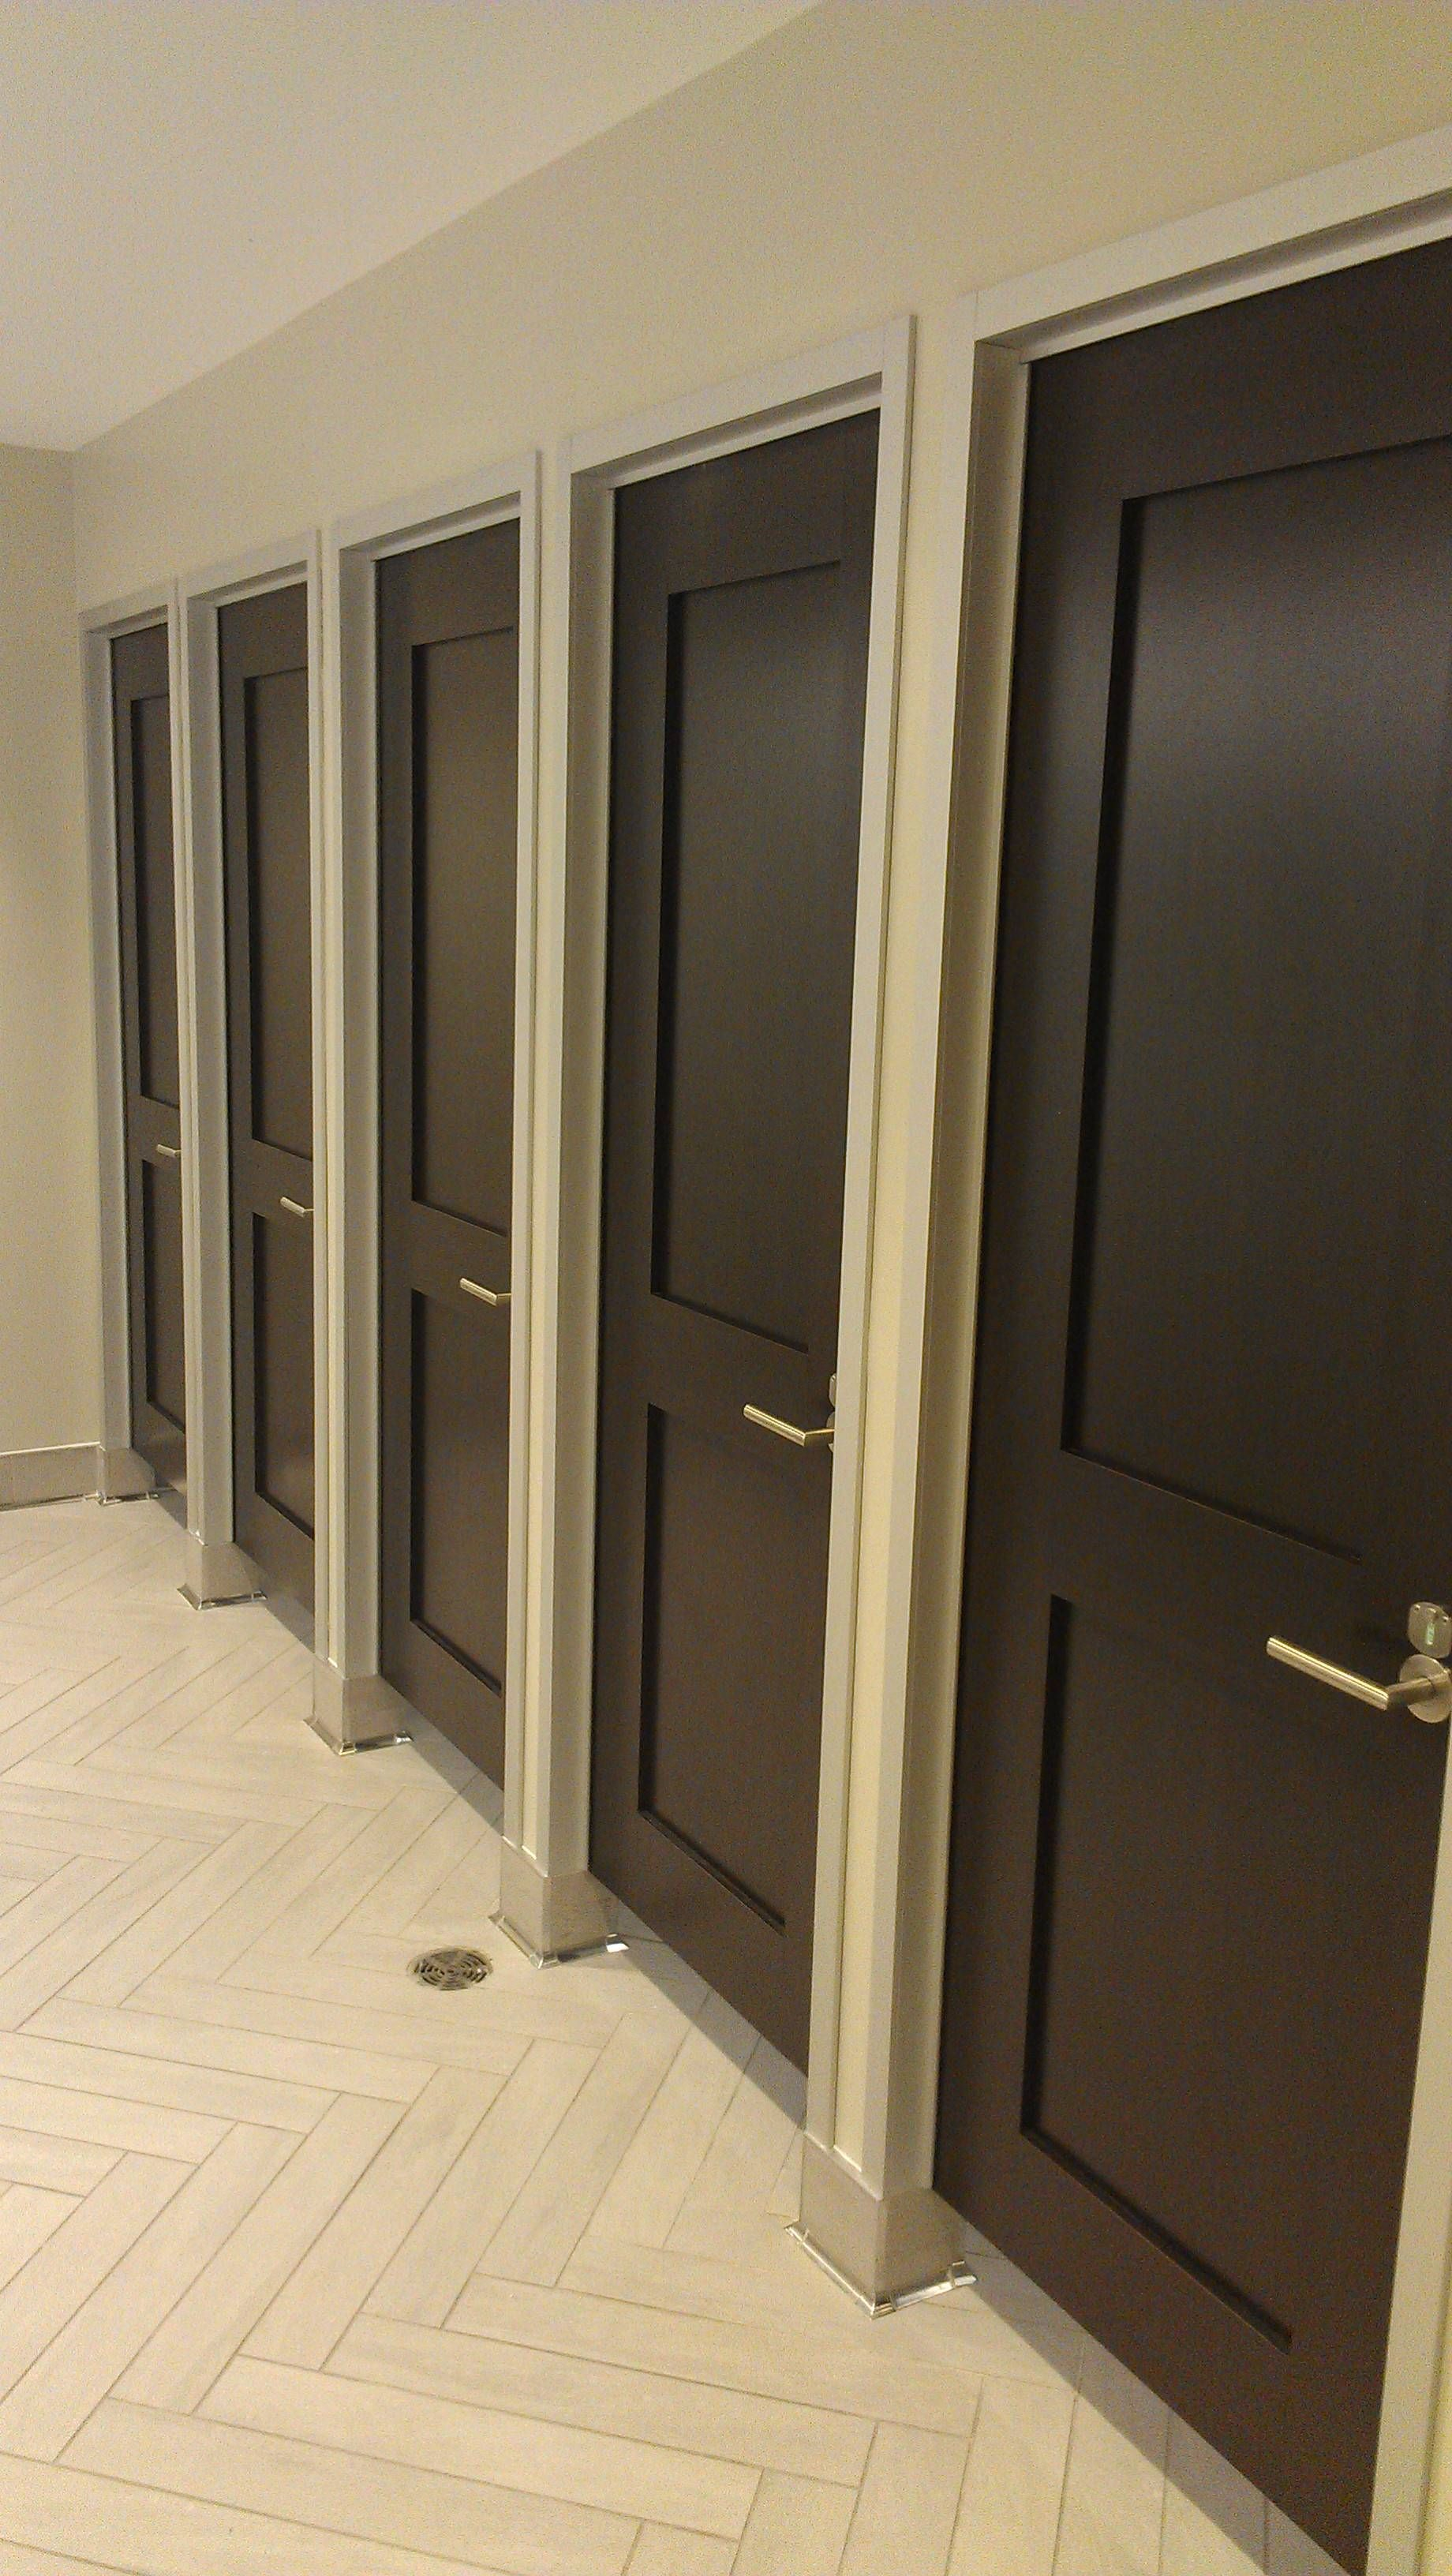 Bradley Bathroom Partitions Property luxury toilet stalls  google search | hale building | pinterest